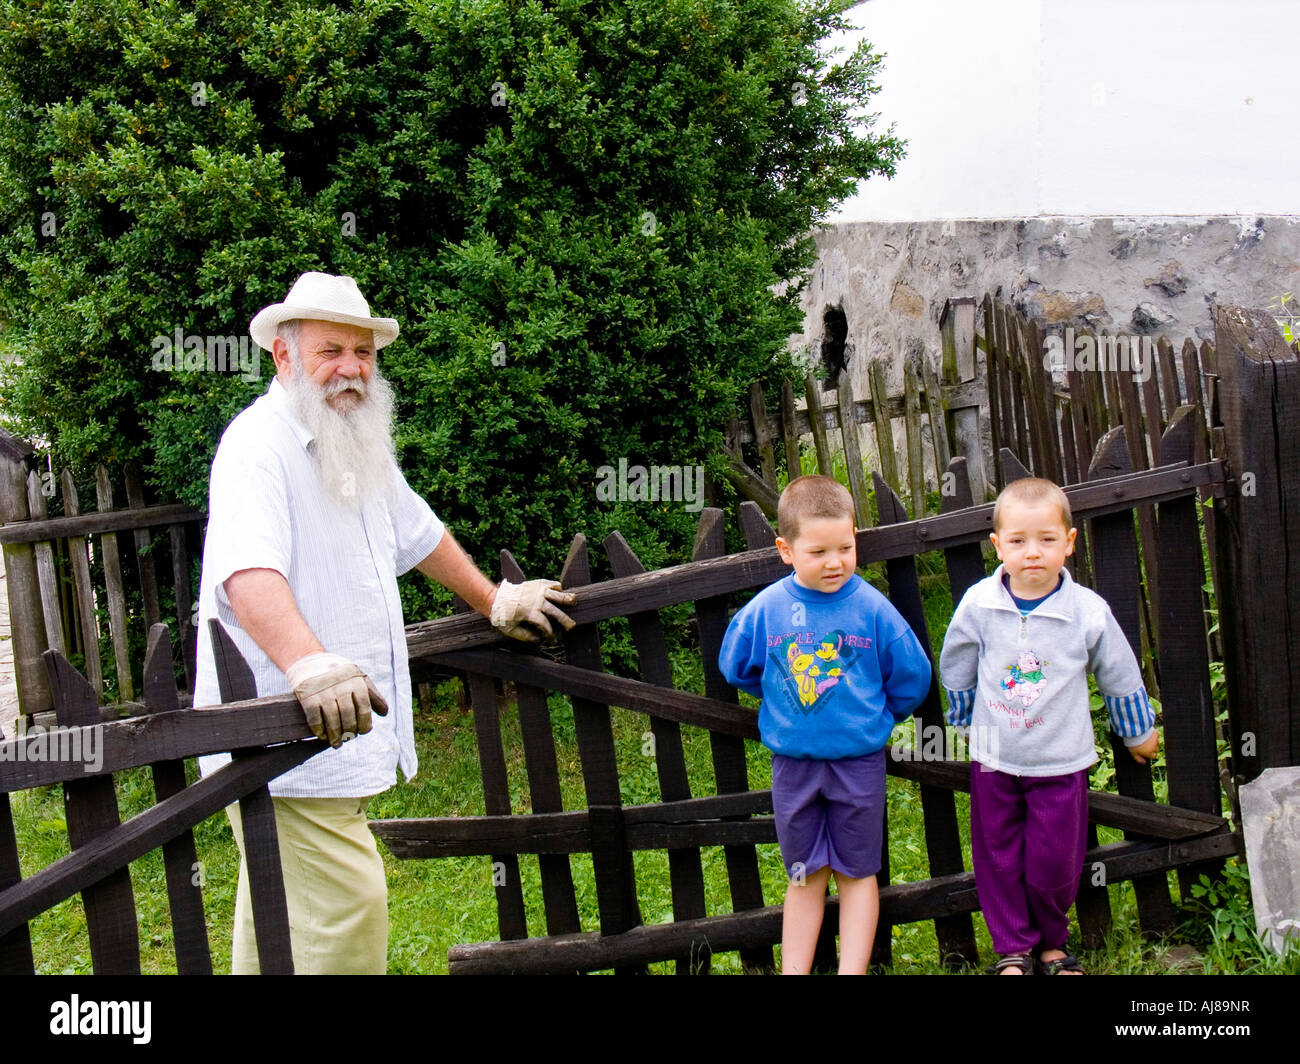 Old man and two children in Holloko village, Hungary Stock Photo